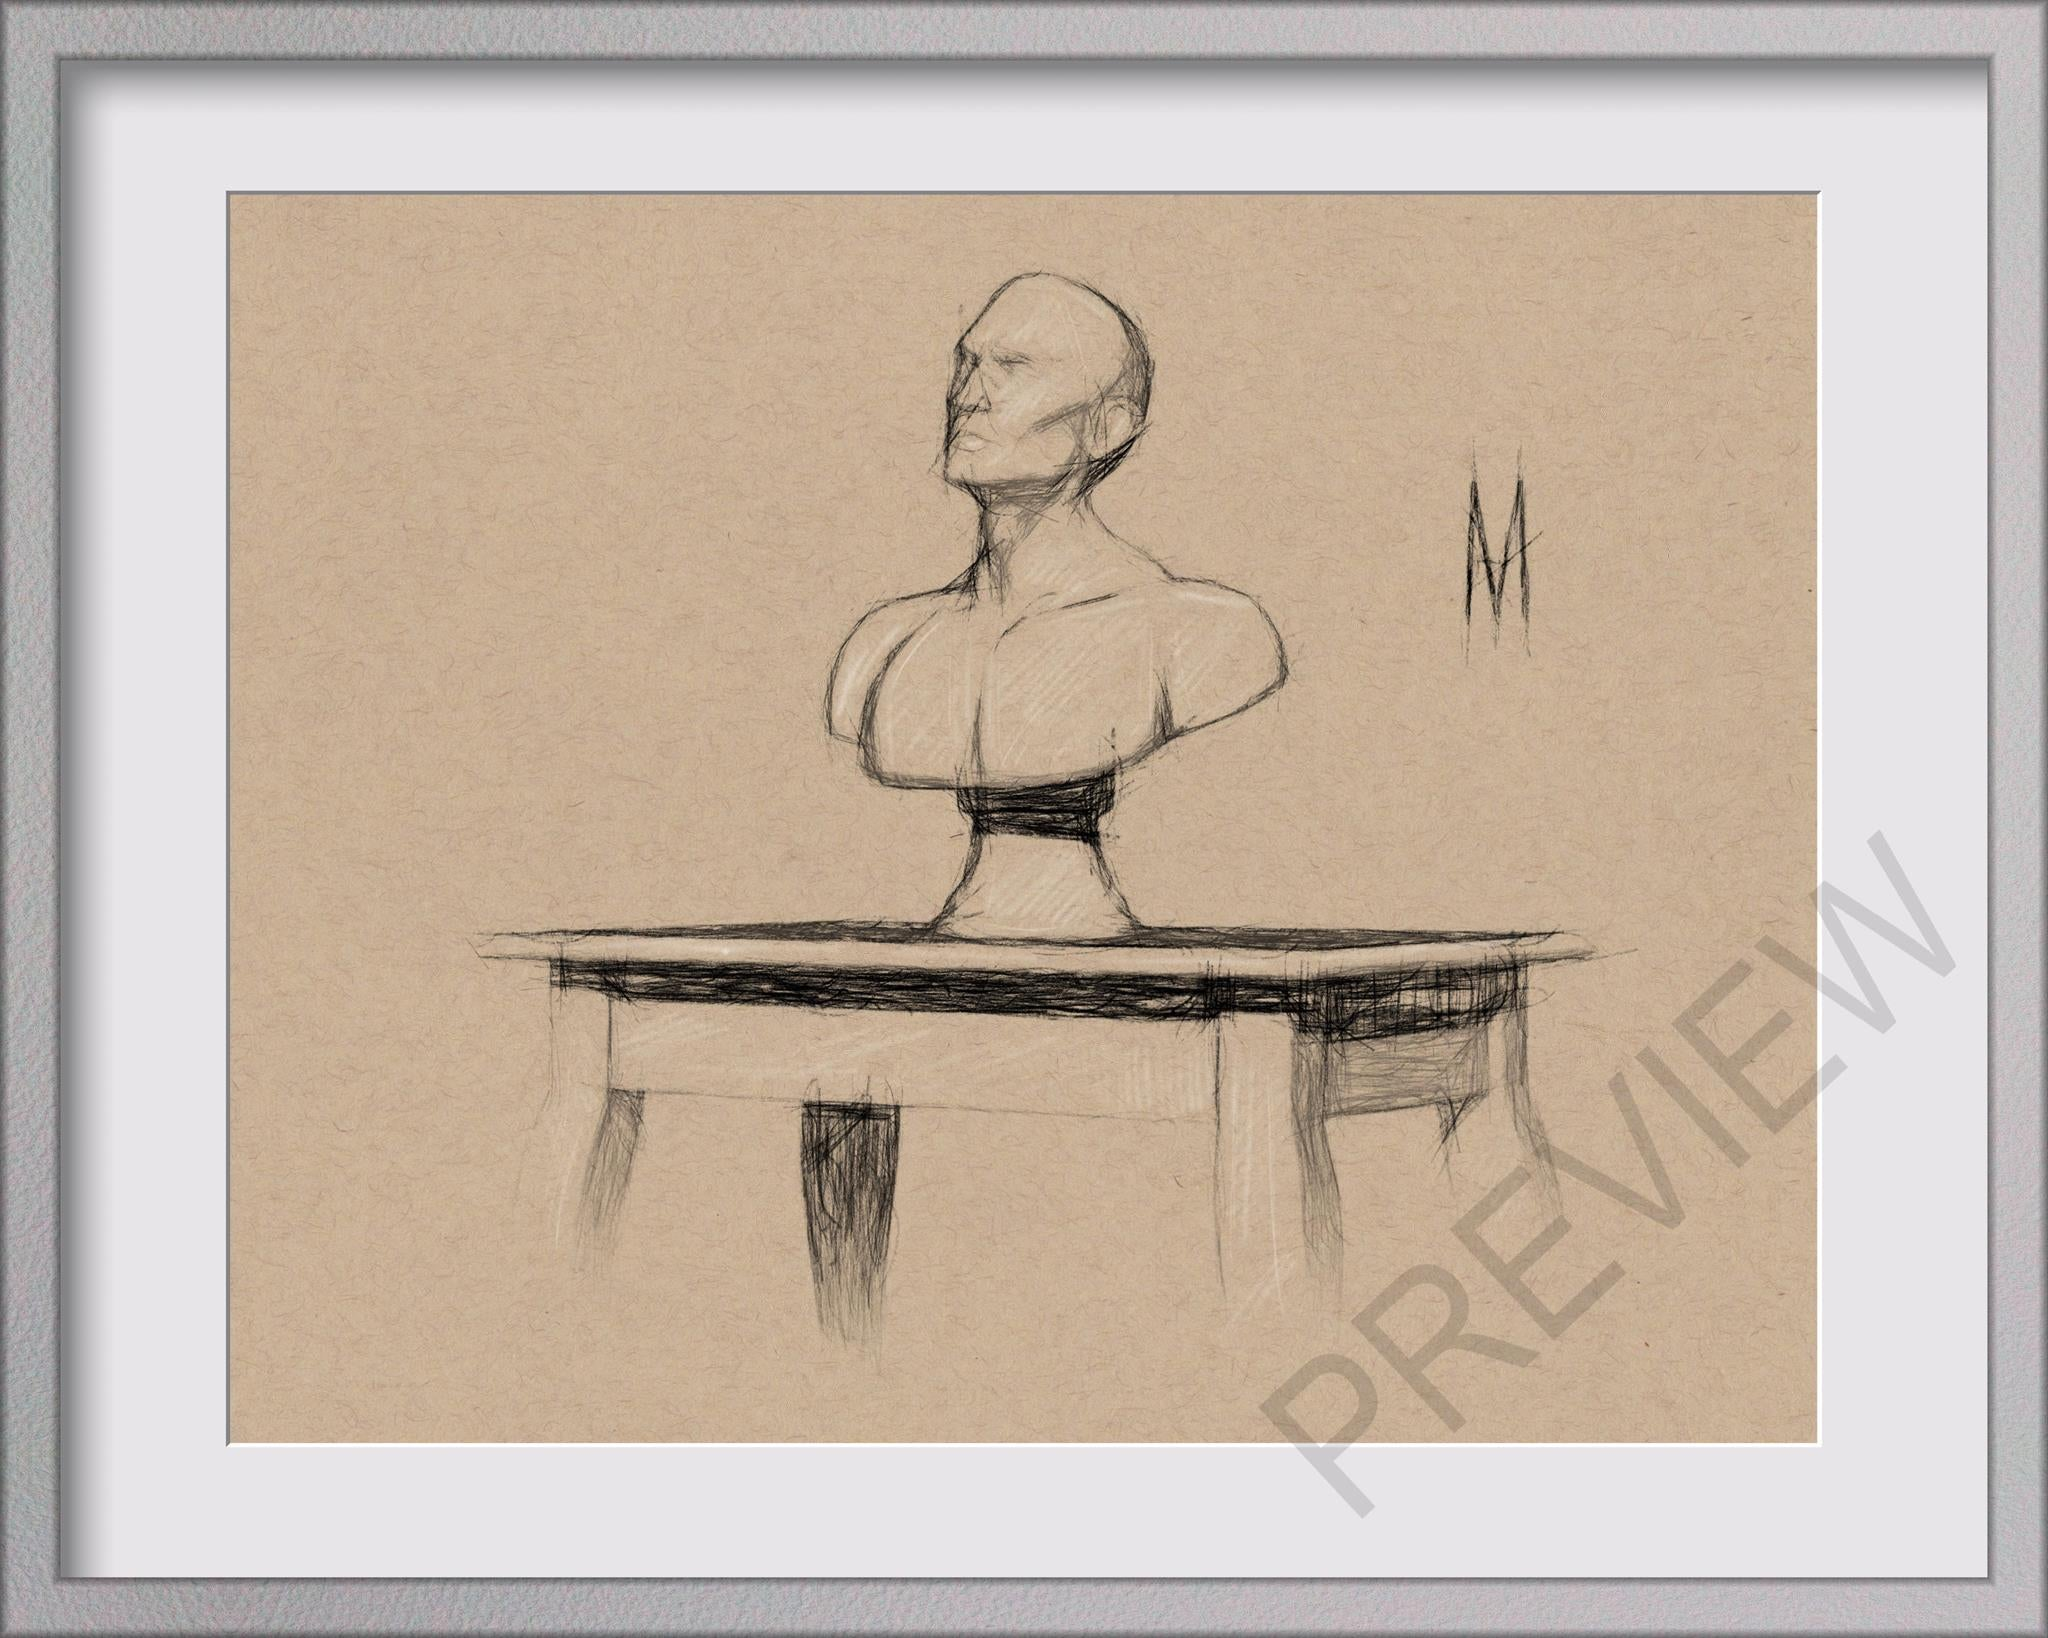 ORIGINAL MALE FIGURE BUST ON TABLE STILL LIFE 8x10 MIXED MEDIA DRAWING